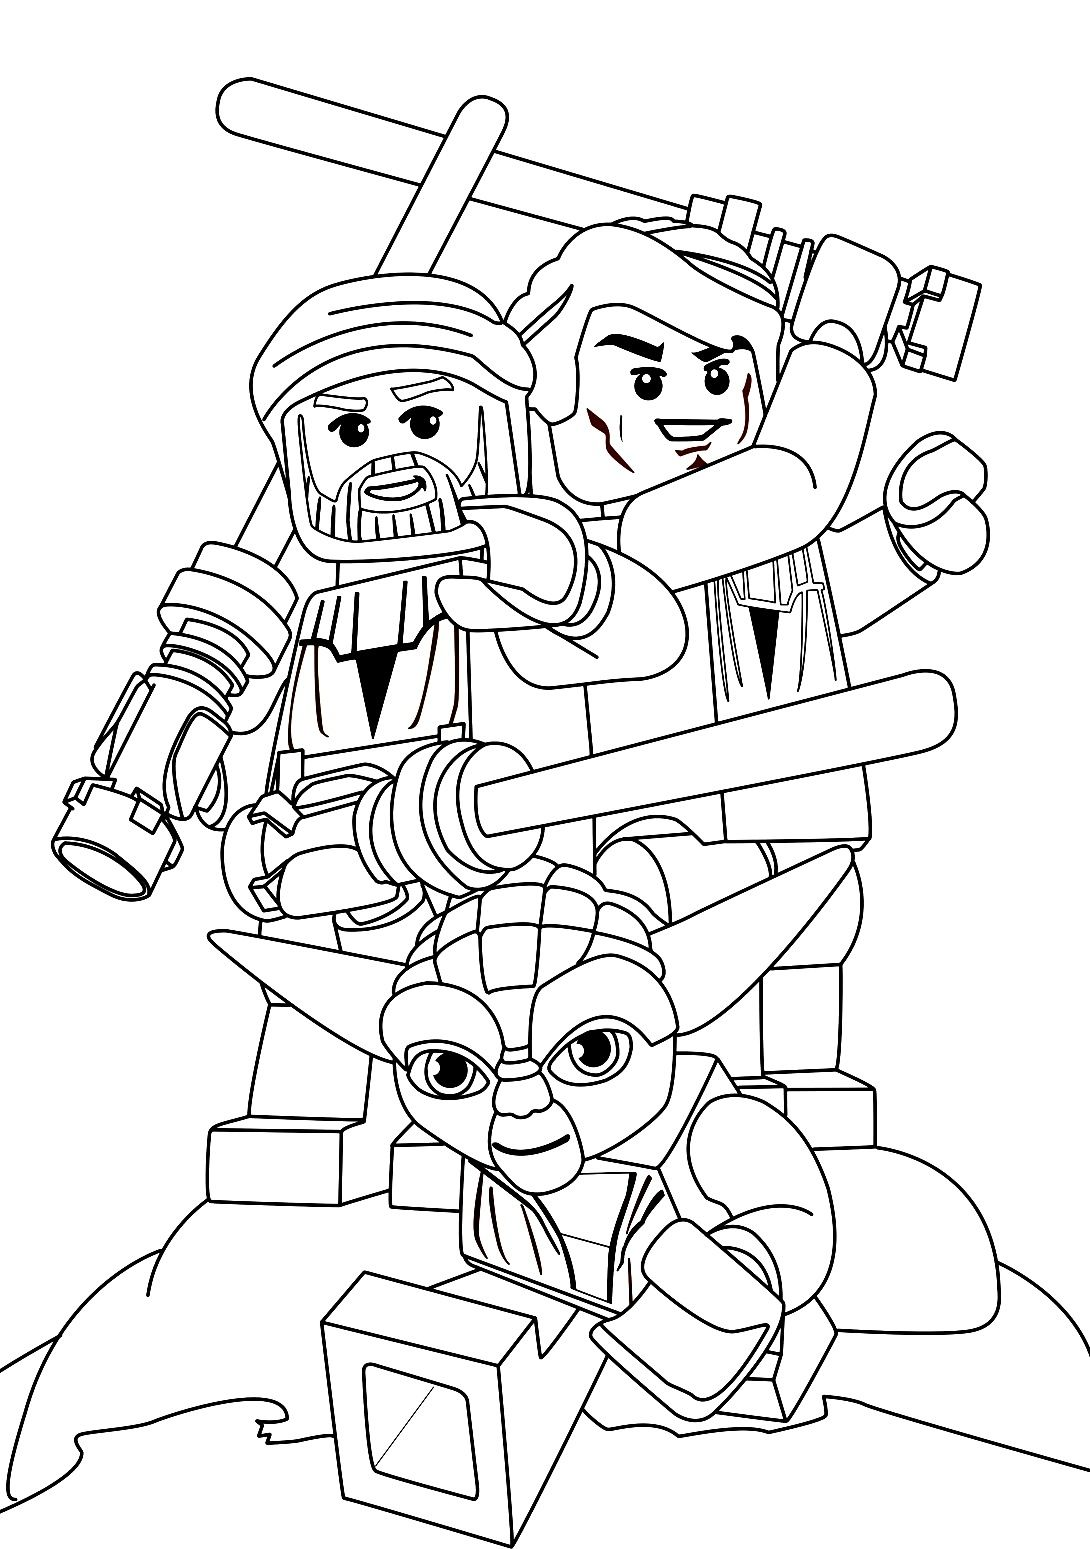 Lego Star Wars Coloring Pages | Star Wars. Yoda is the coolest one ...